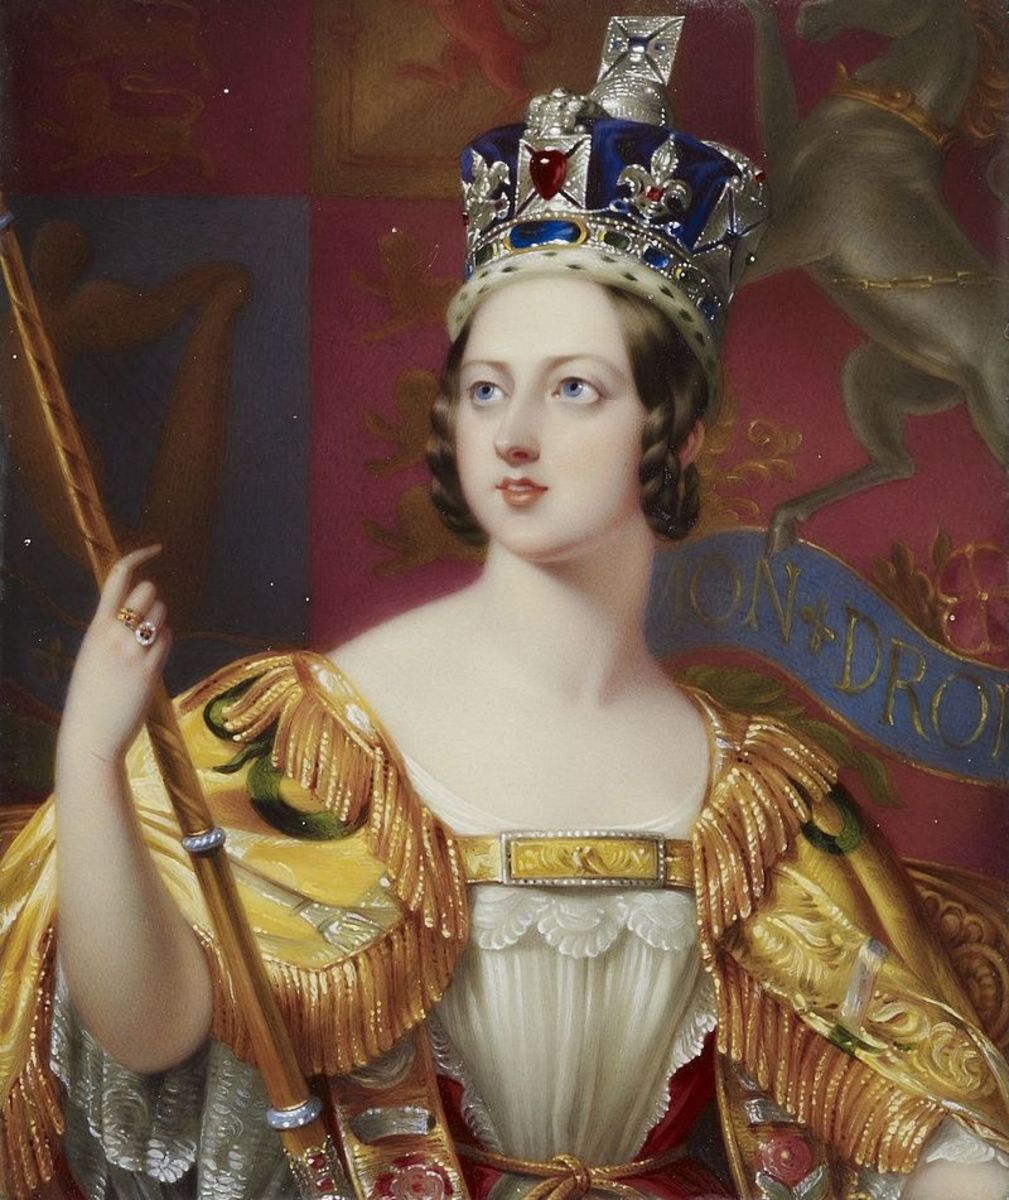 Queen Victoria's coronation portrait.